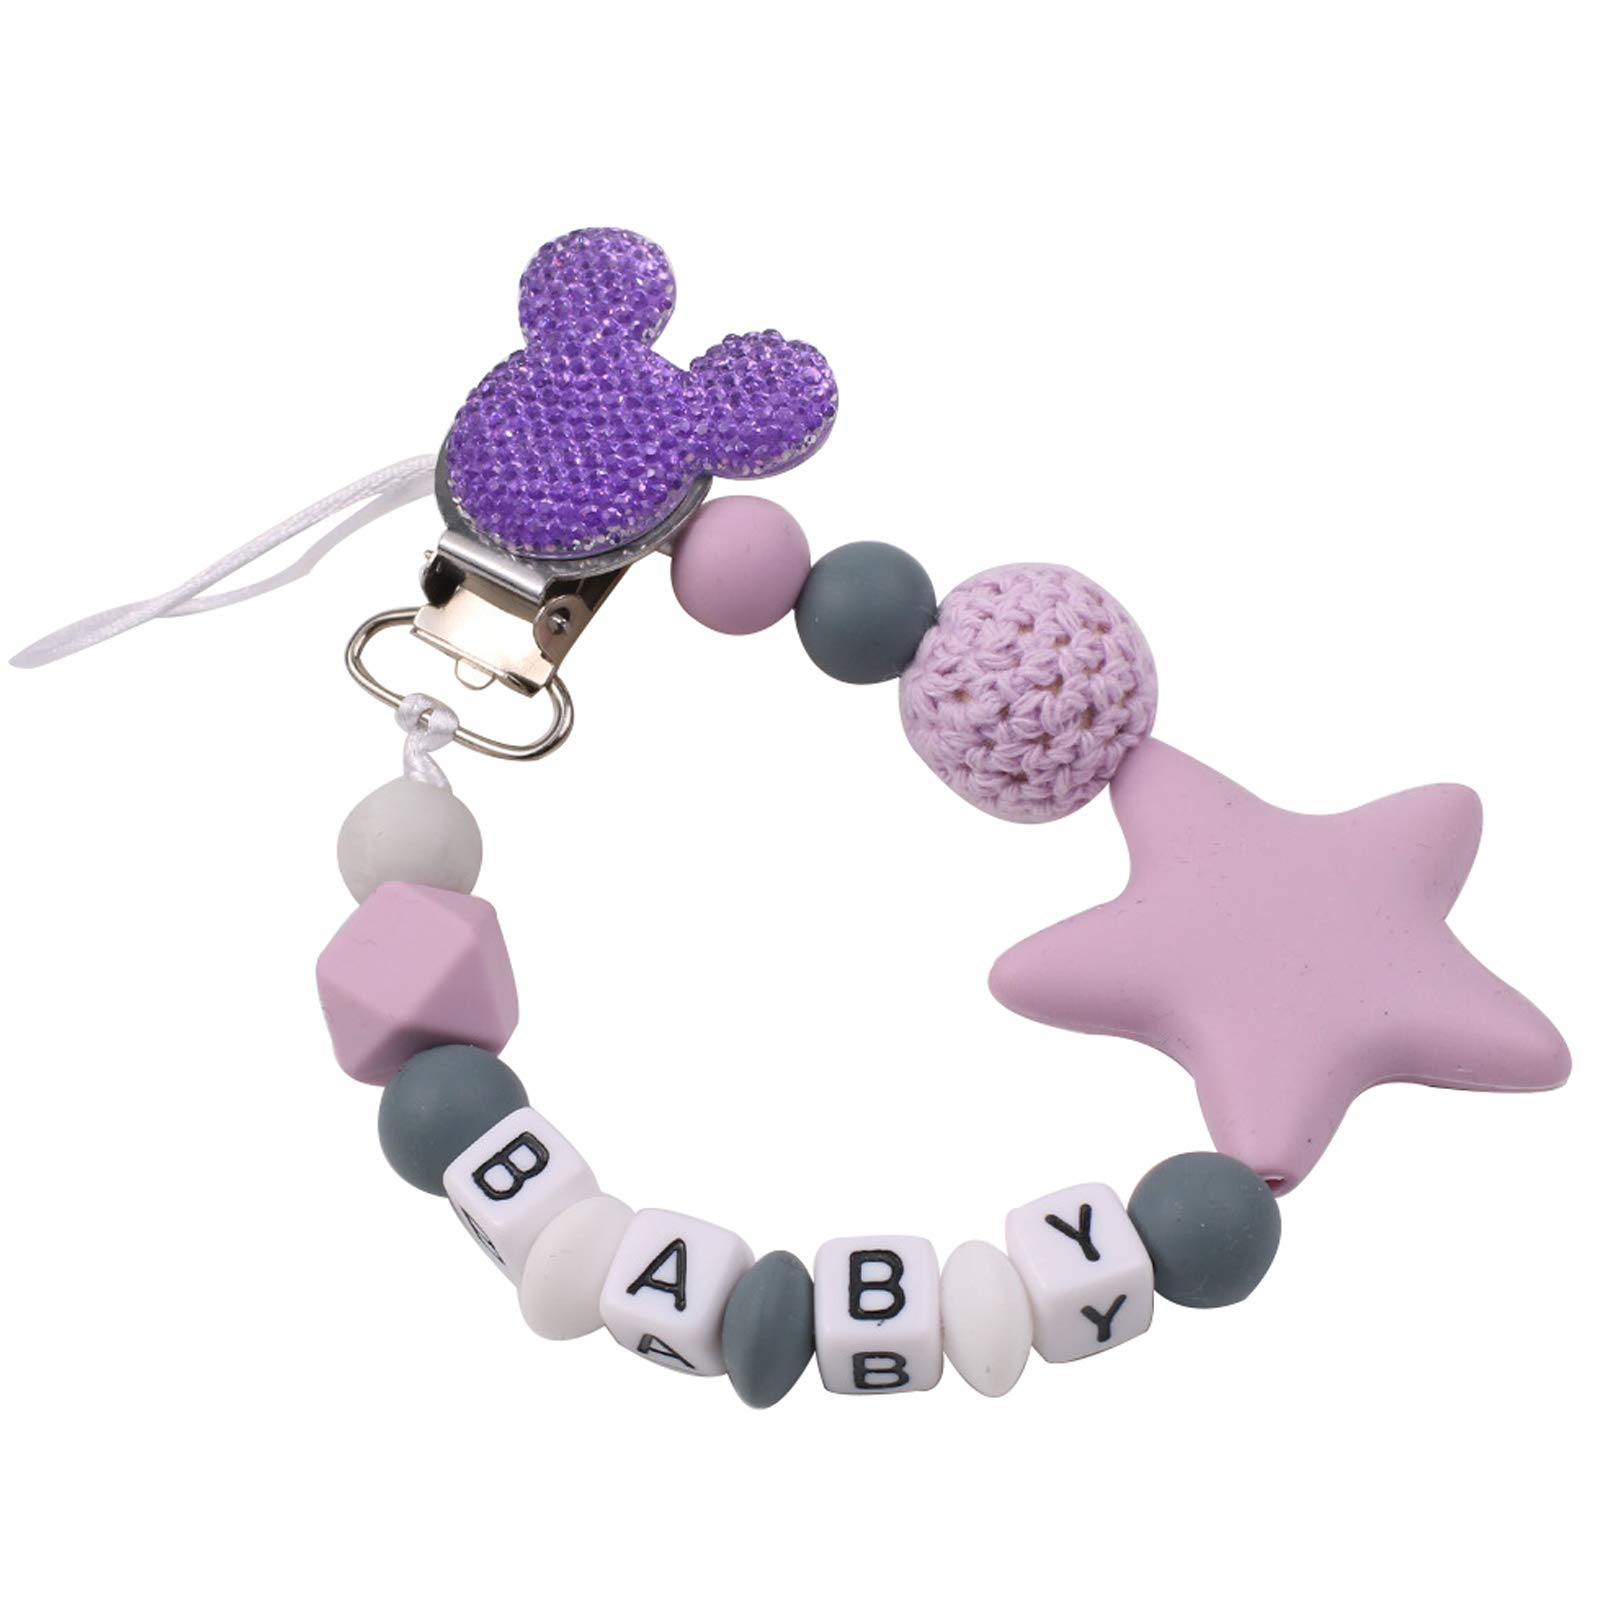 Pacifier Clip with Name Upaluap Silicone Beads Star Soothing Toys Lovey Baby Paci Clip Holder Personalized Name Binky Holder Unique Gift for Newborn Boys & Girls - Purple